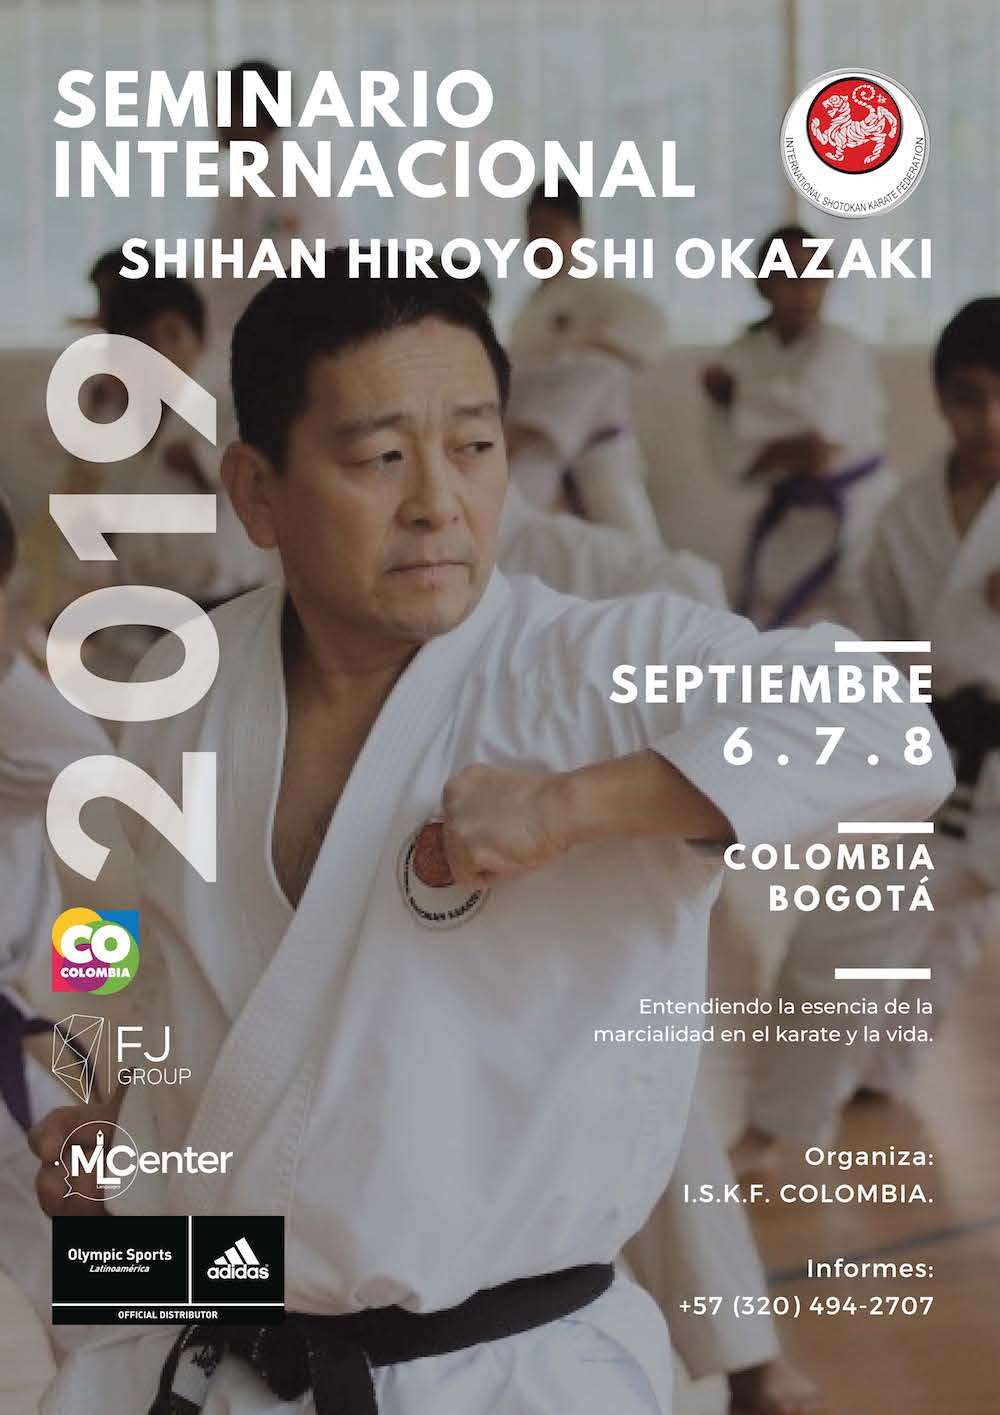 International Seminar with Shihan Hiroyoshi Okazaki @ BOGOTA, COLOMBIA, September 6-8, 2019